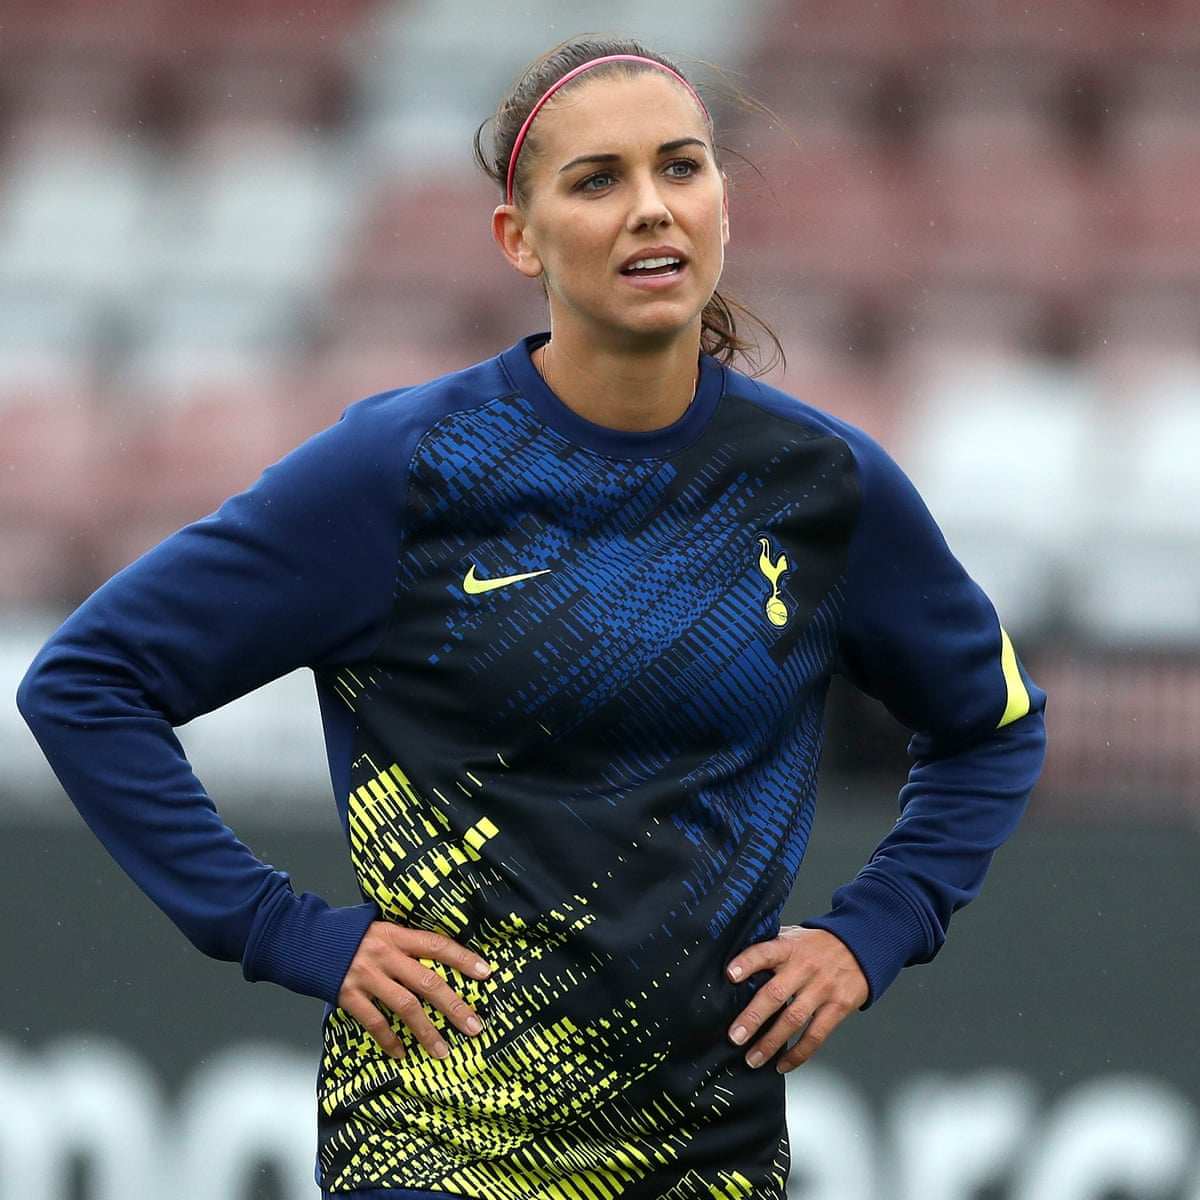 Tottenham S Alex Morgan My Touch I M Still Waiting For It To Come Back Football The Guardian